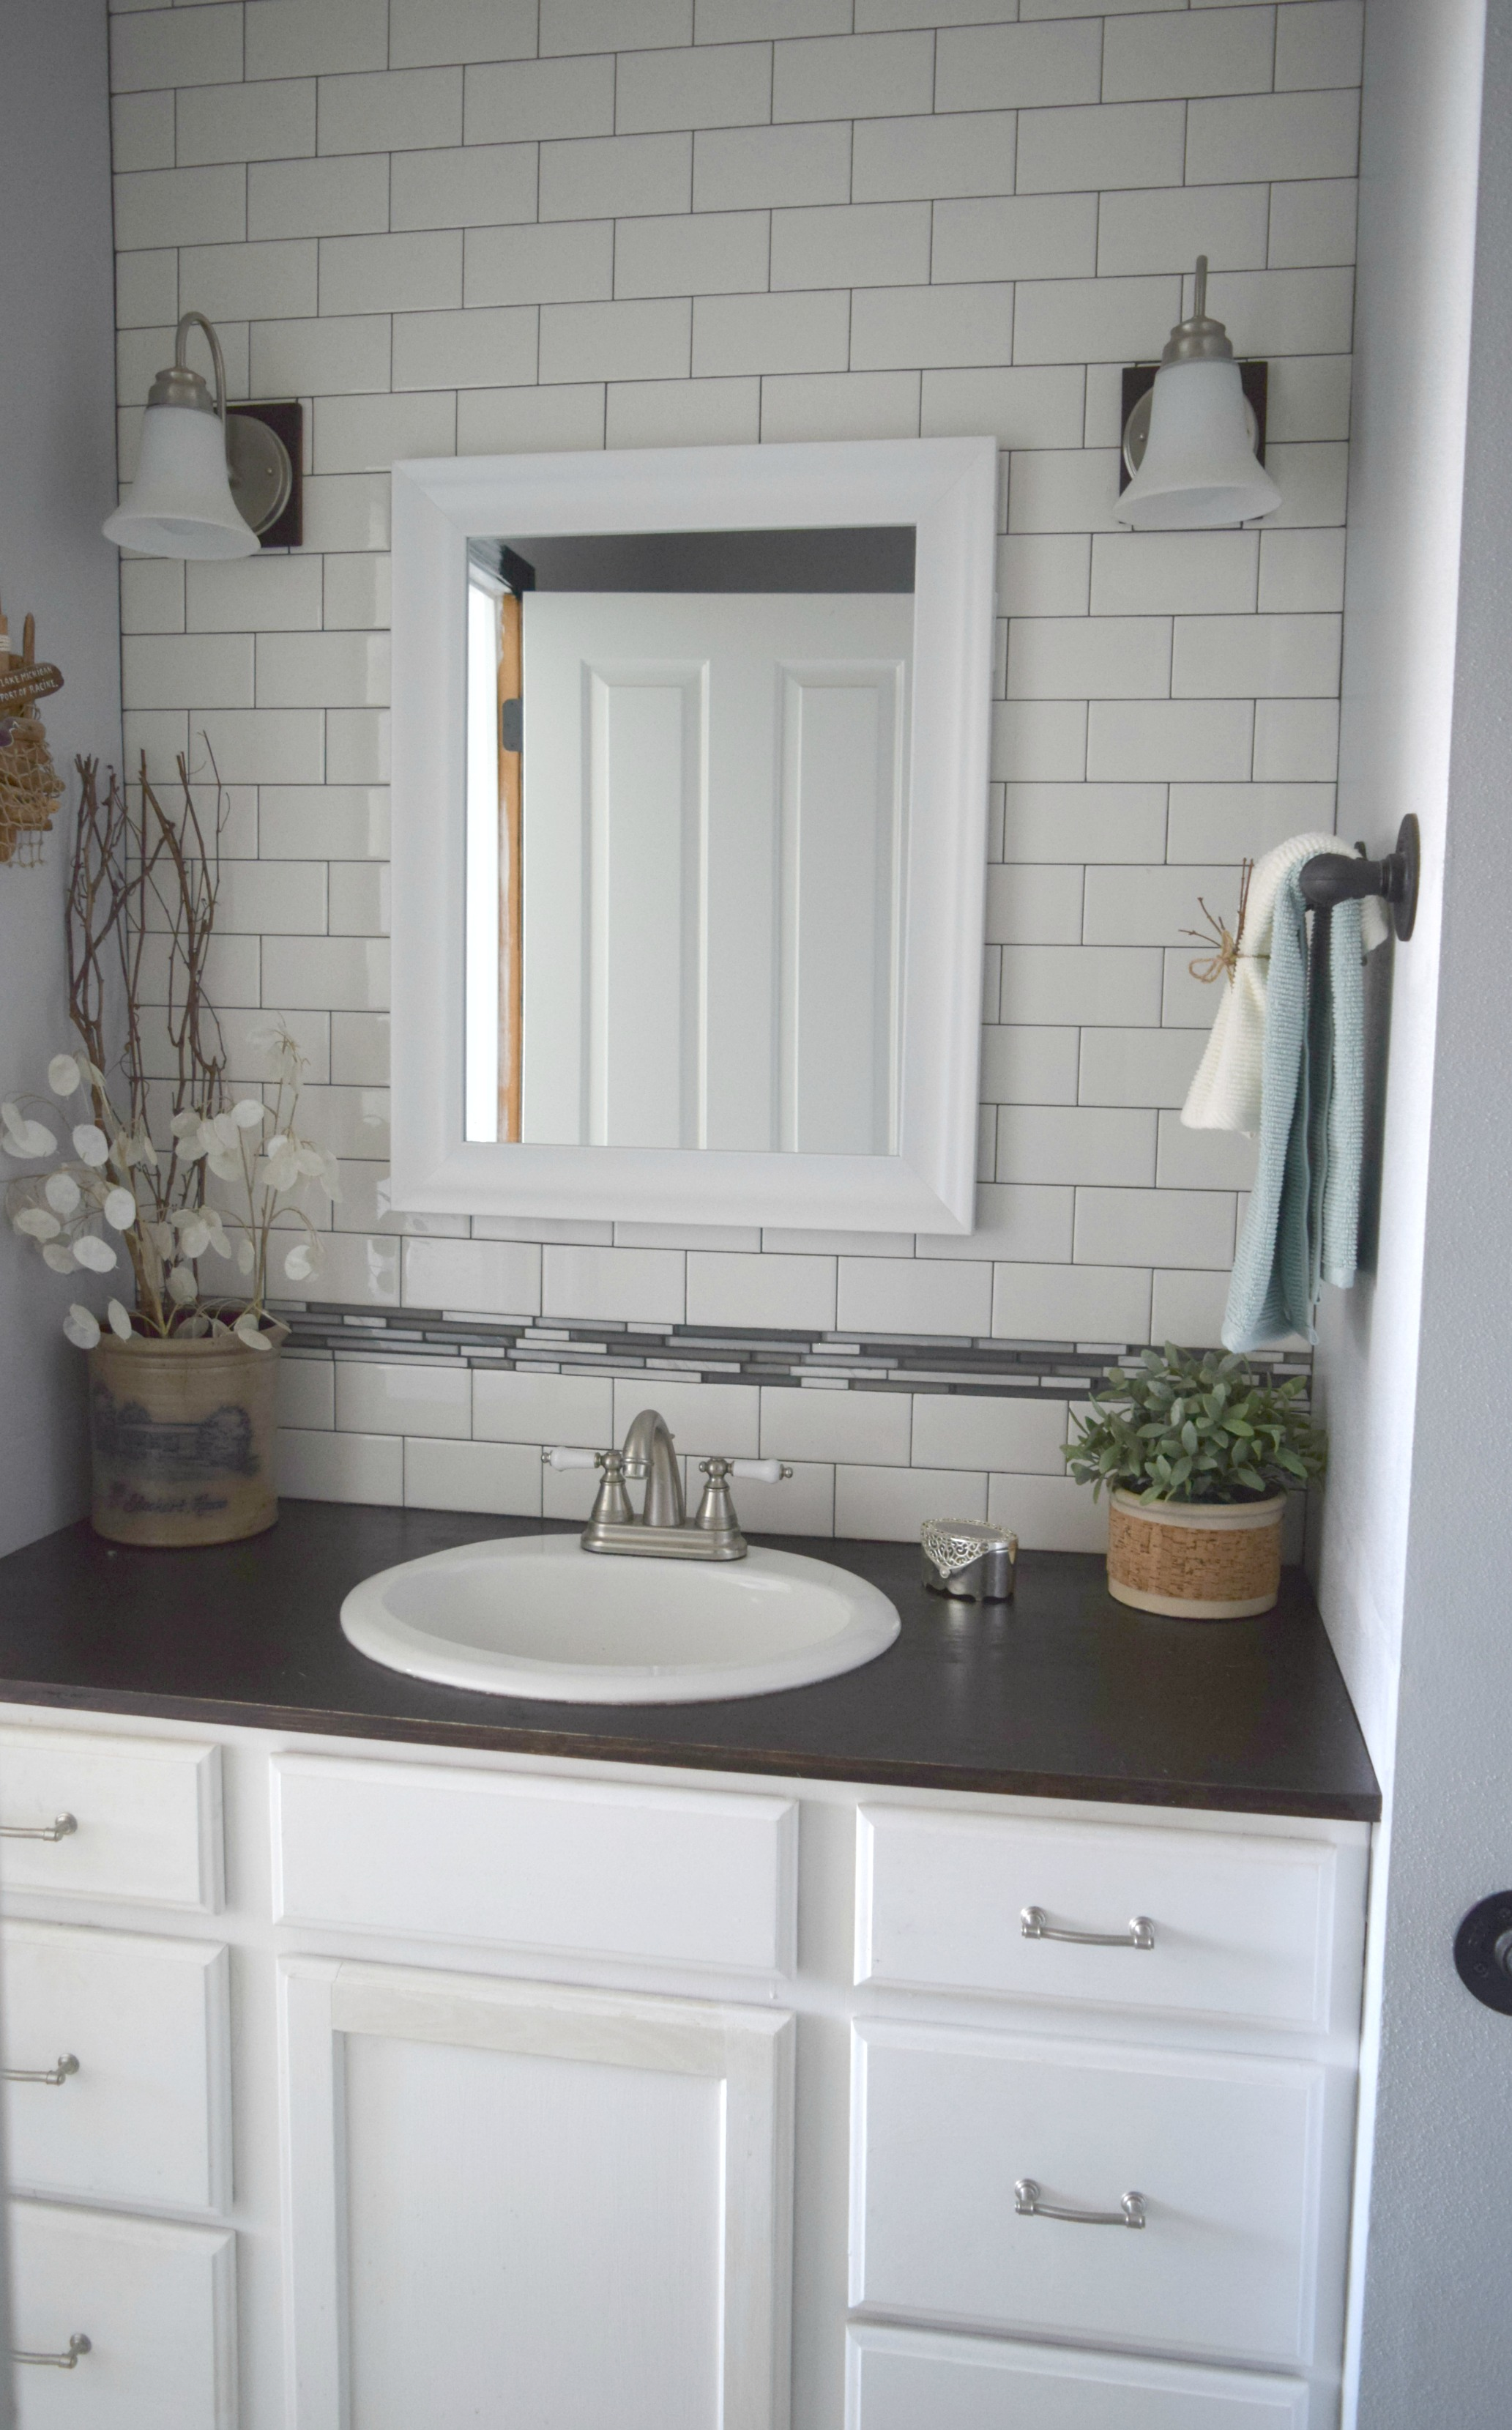 Simple bathroom updates  Our House Now a Home